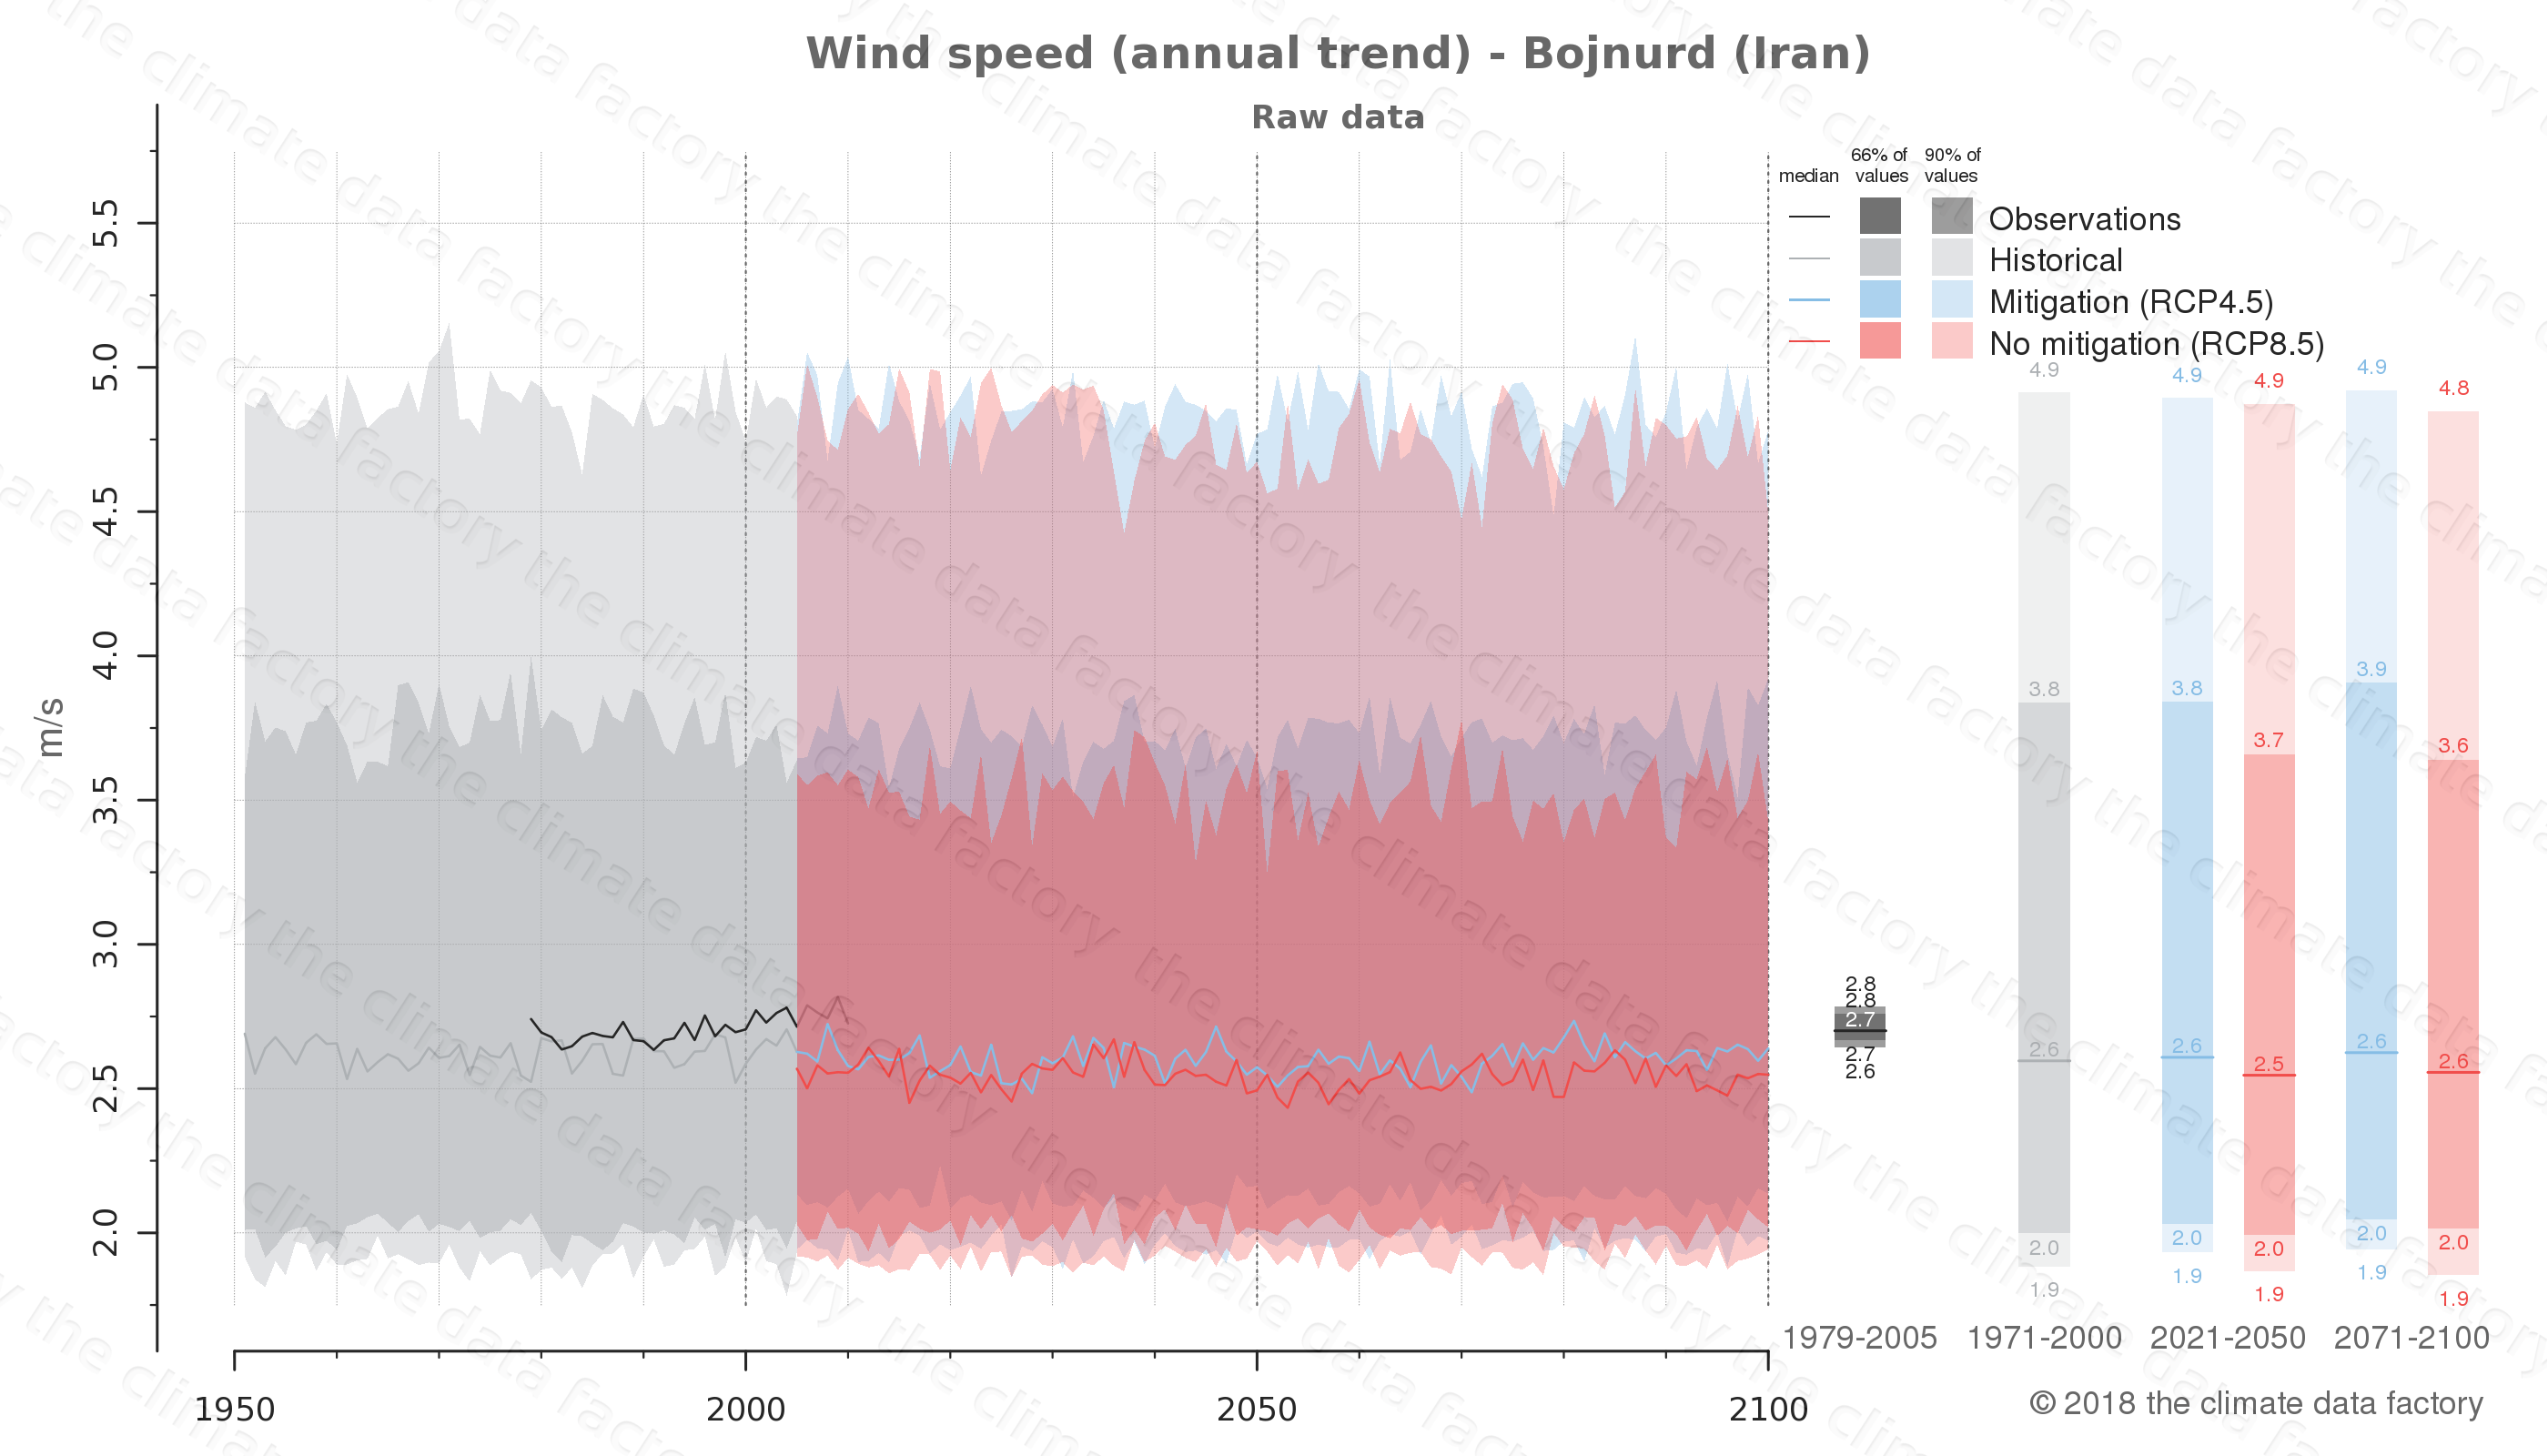 climate change data policy adaptation climate graph city data wind-speed bojnurd iran